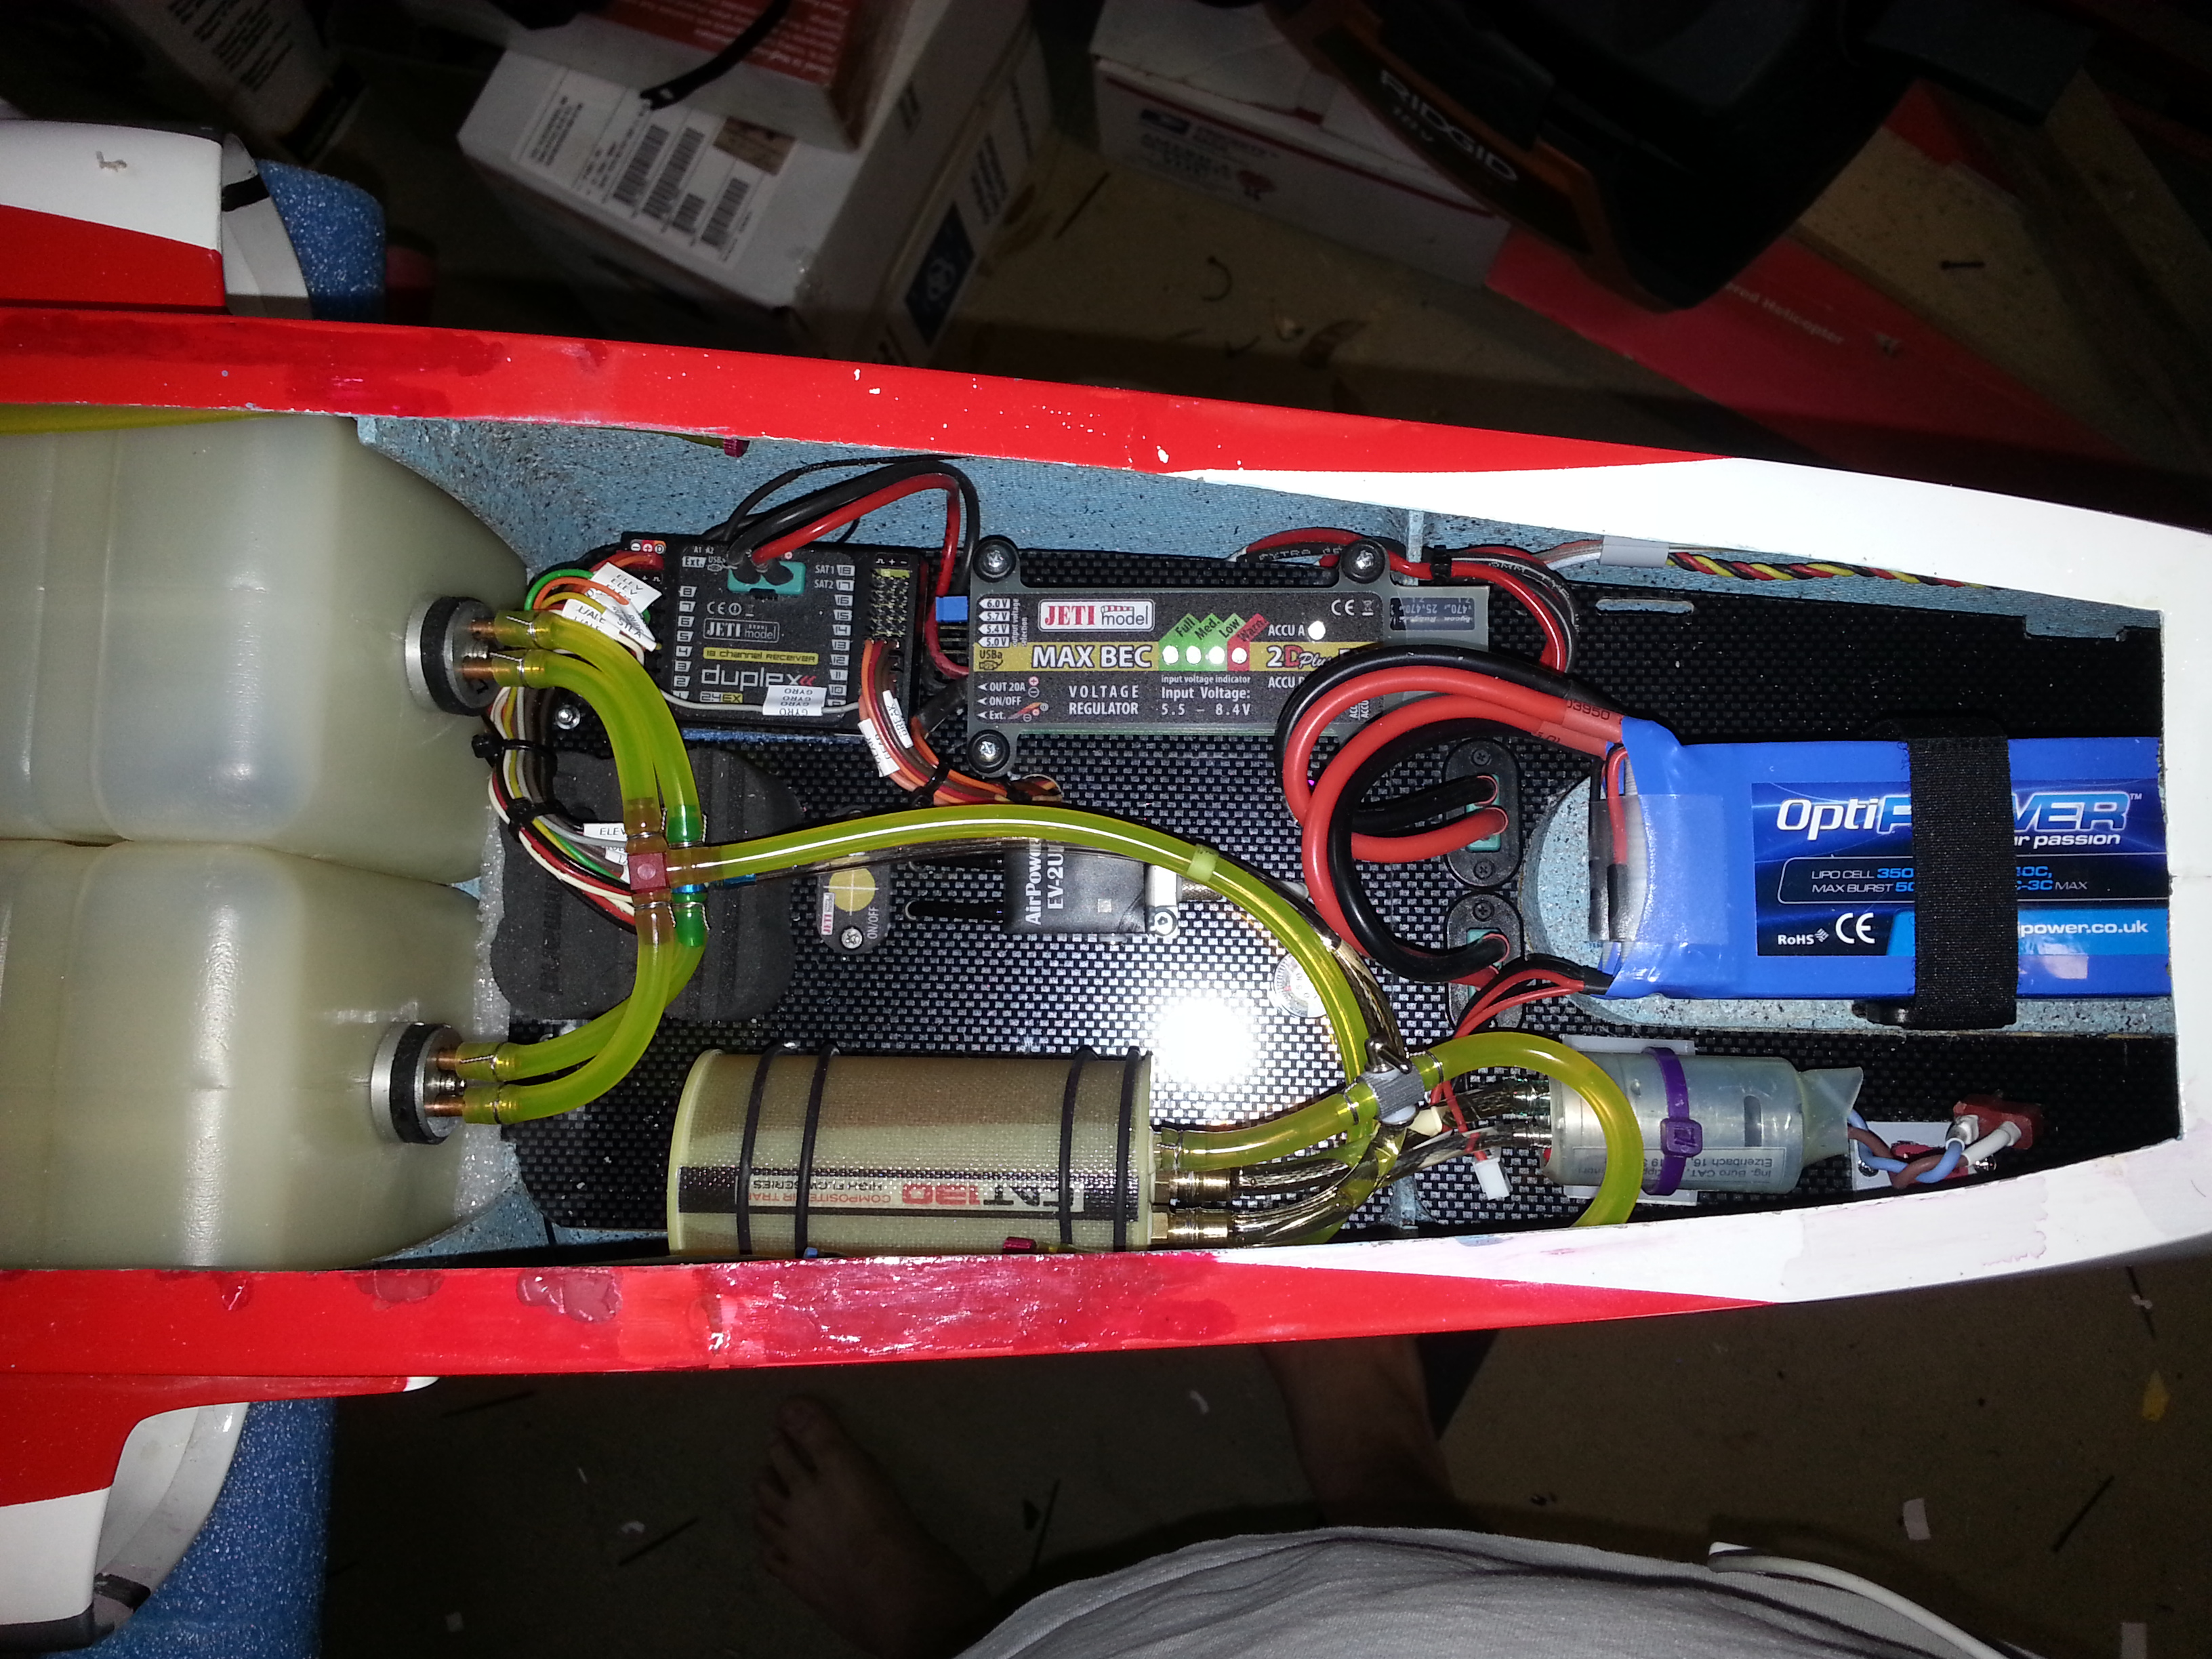 Jet Legend Viper Build Thread Page 59 Rcu Forums Surface Mounted Box And Wiring 1407 Chase After